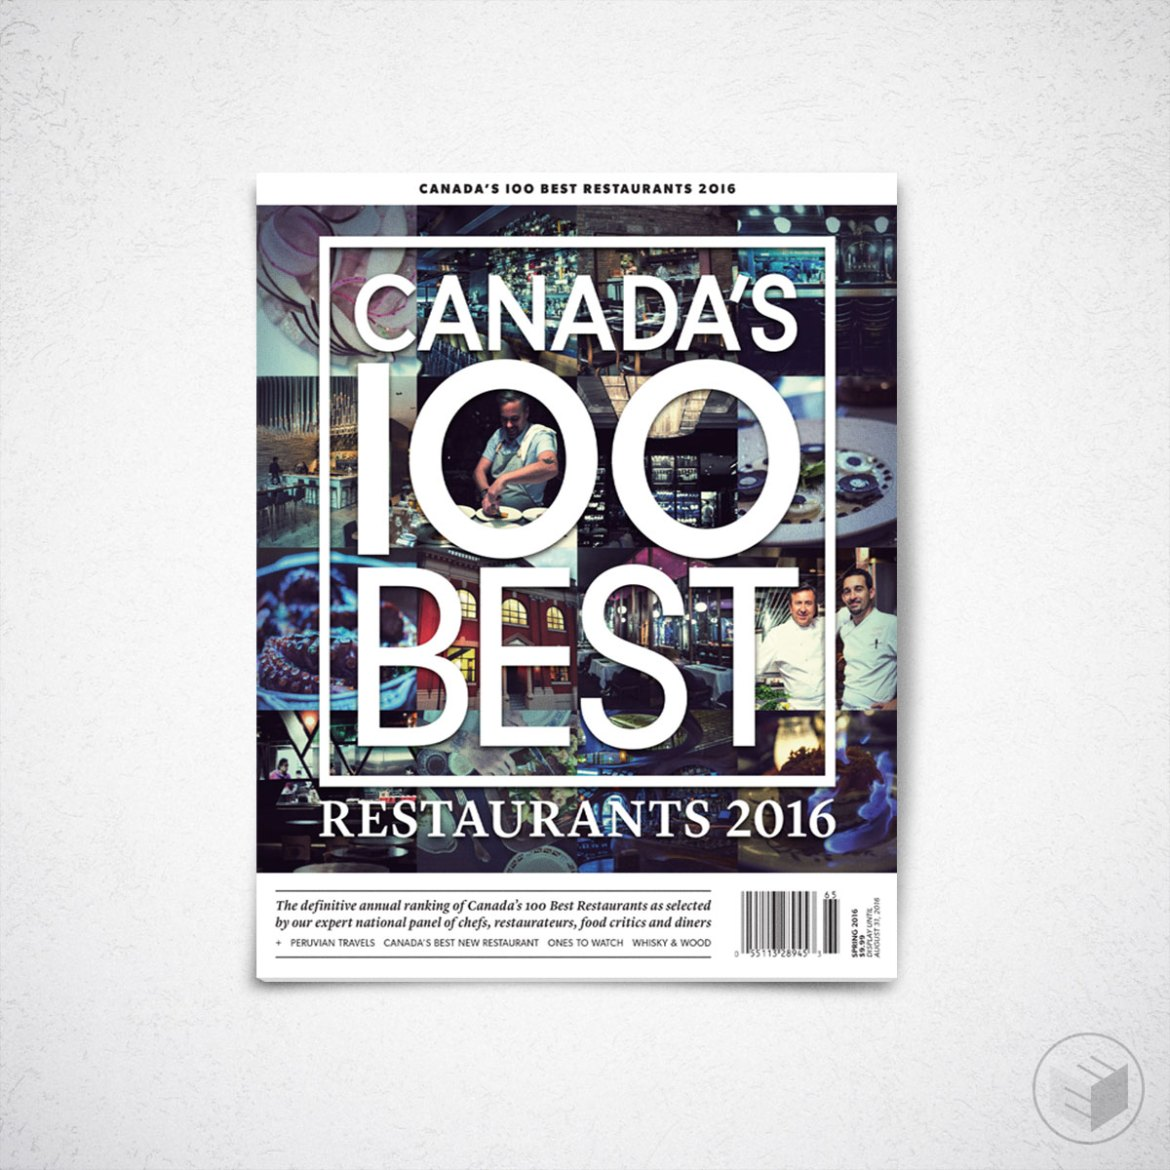 CANADA'S 100 BEST RESTAURANTS 2016 COVER